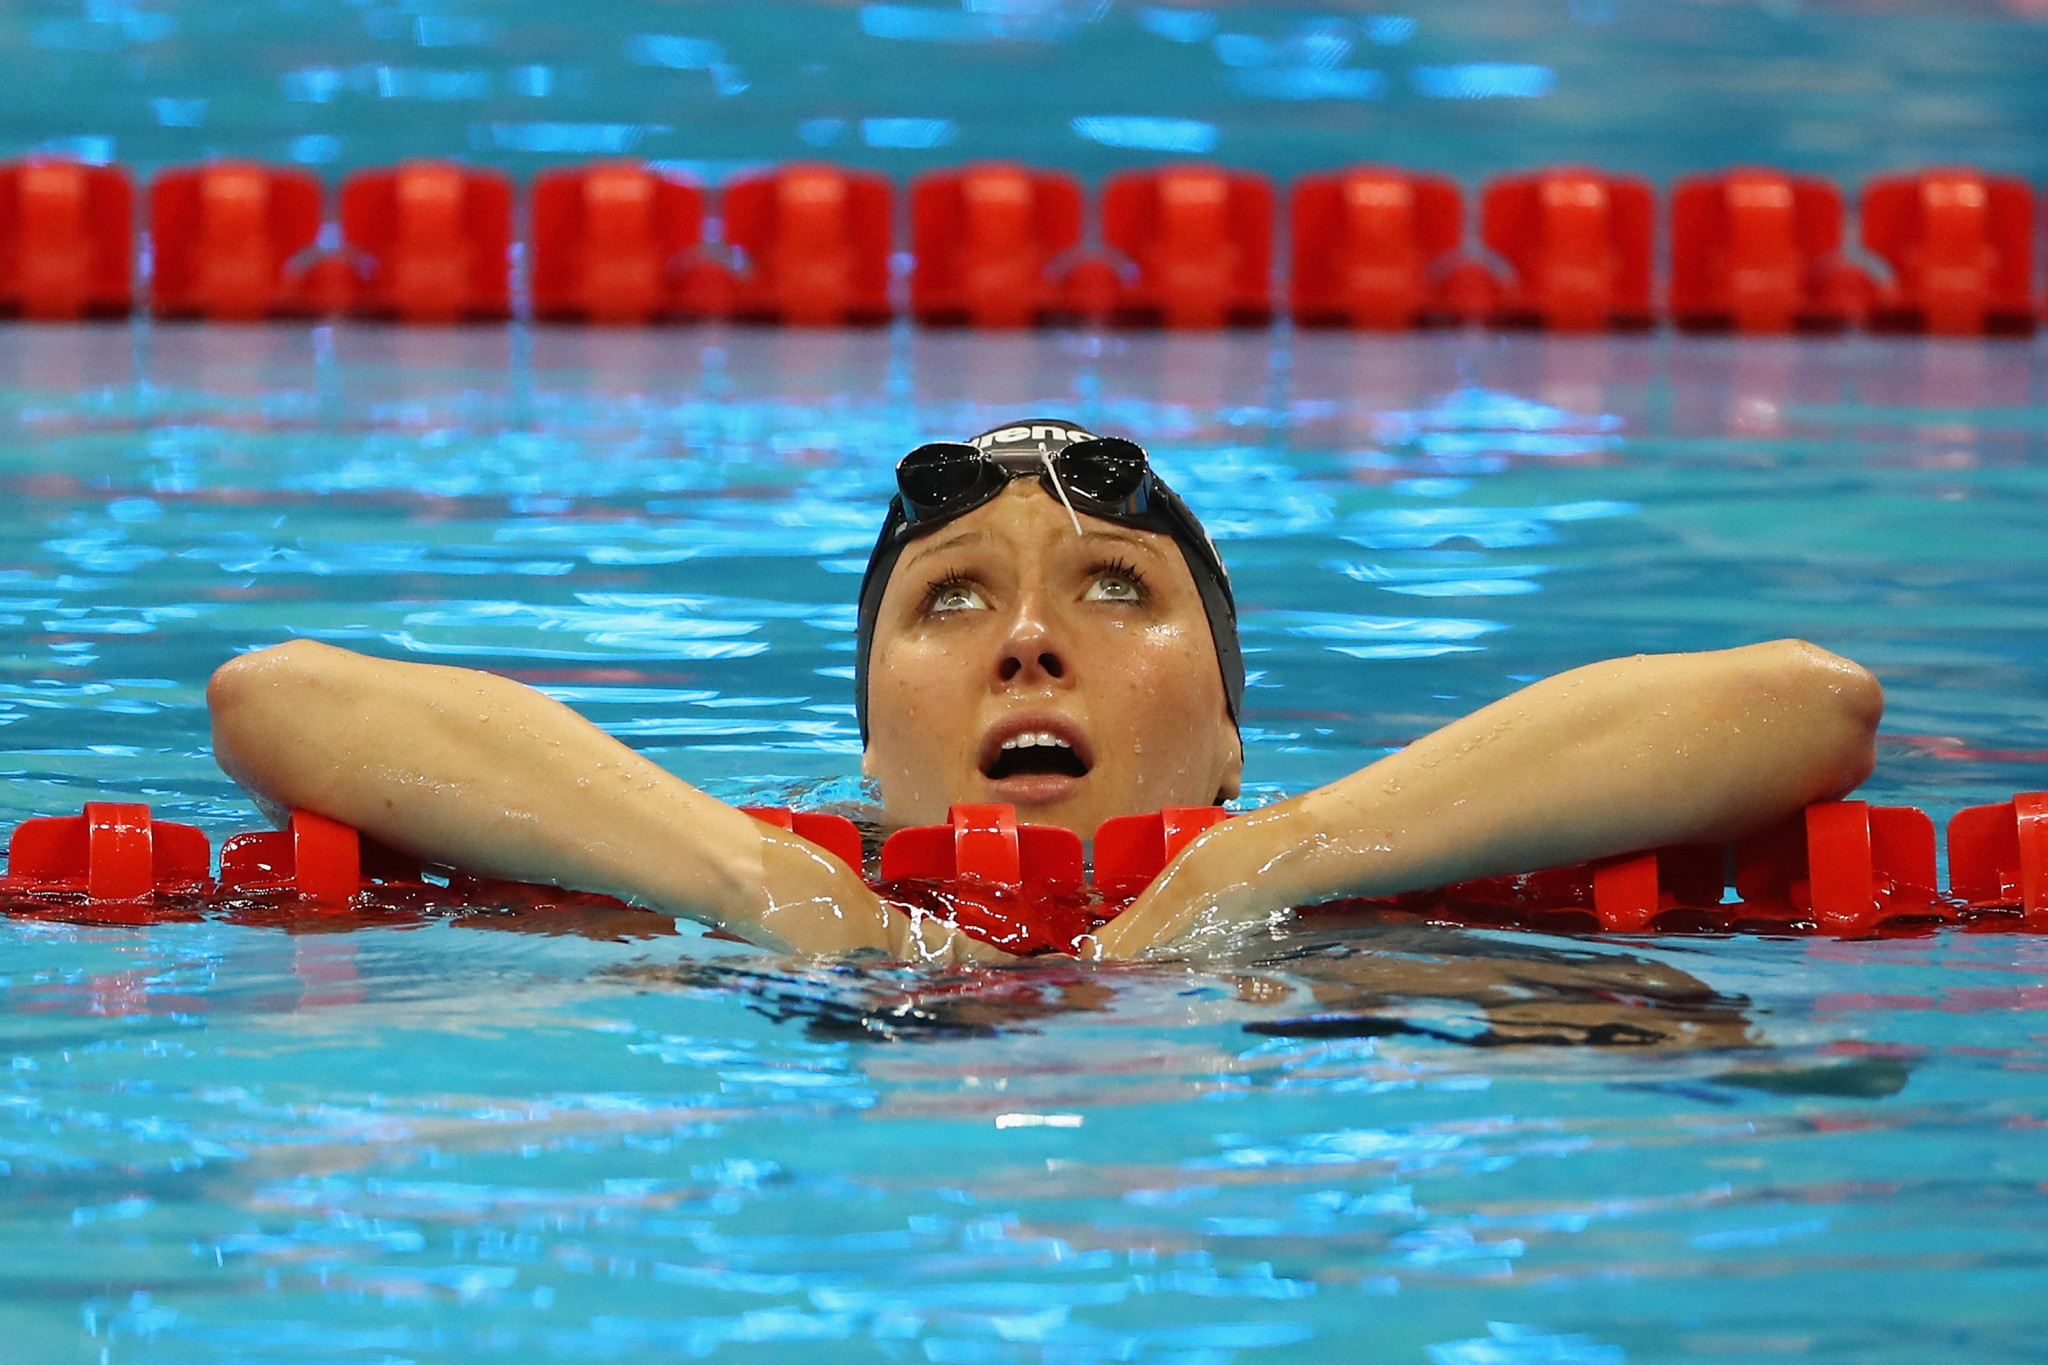 Long secures ninth gold as World Para Swimming Championships conclude in Mexico City